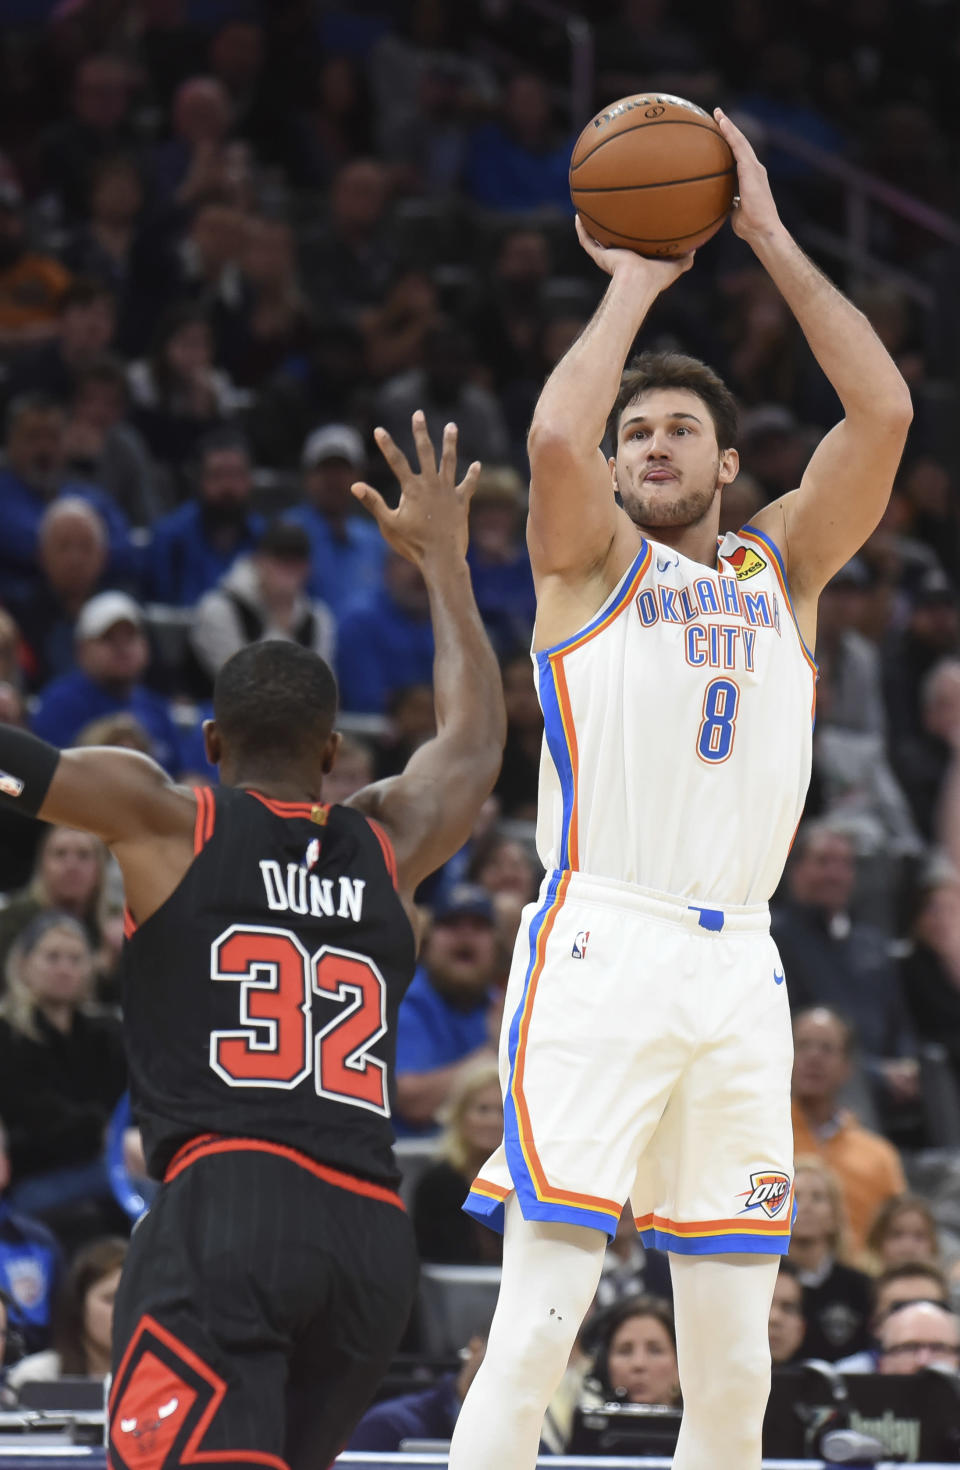 Oklahoma City Thunder forward Danilo Gallinari shoots the ball over Chicago Bulls guard Kris Dunn in the second half of an NBA basketball game, Monday, Dec. 16, 2019, in Oklahoma City. (AP Photo/Kyle Phillips)